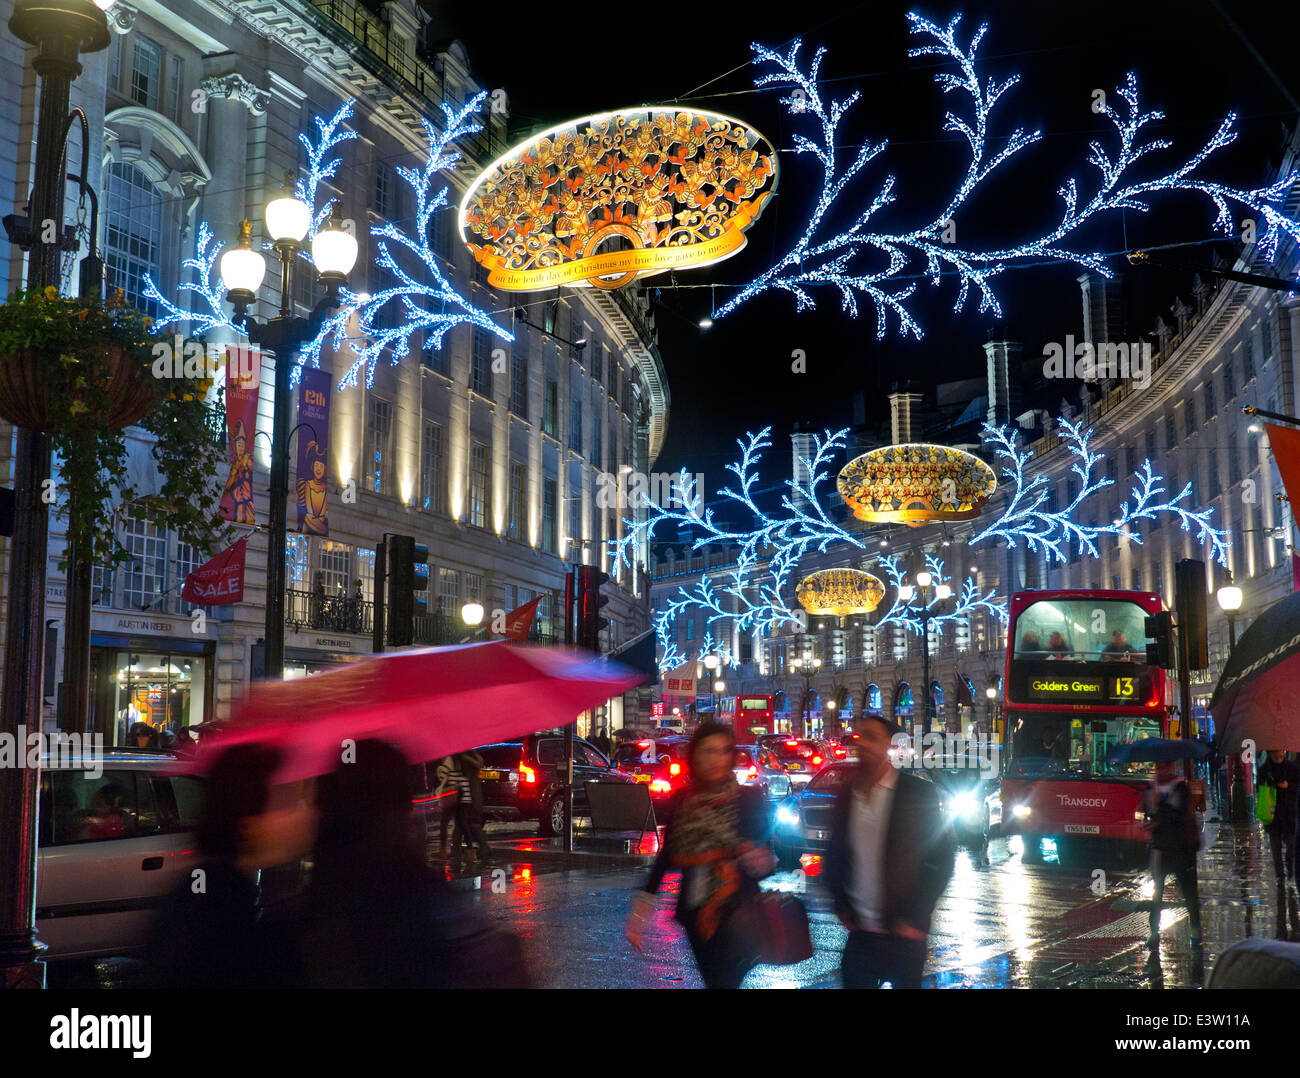 Busy scene of Christmas shoppers, traffic and umbrellas in a rain swept Regent Street with Christmas lights behind Stock Photo